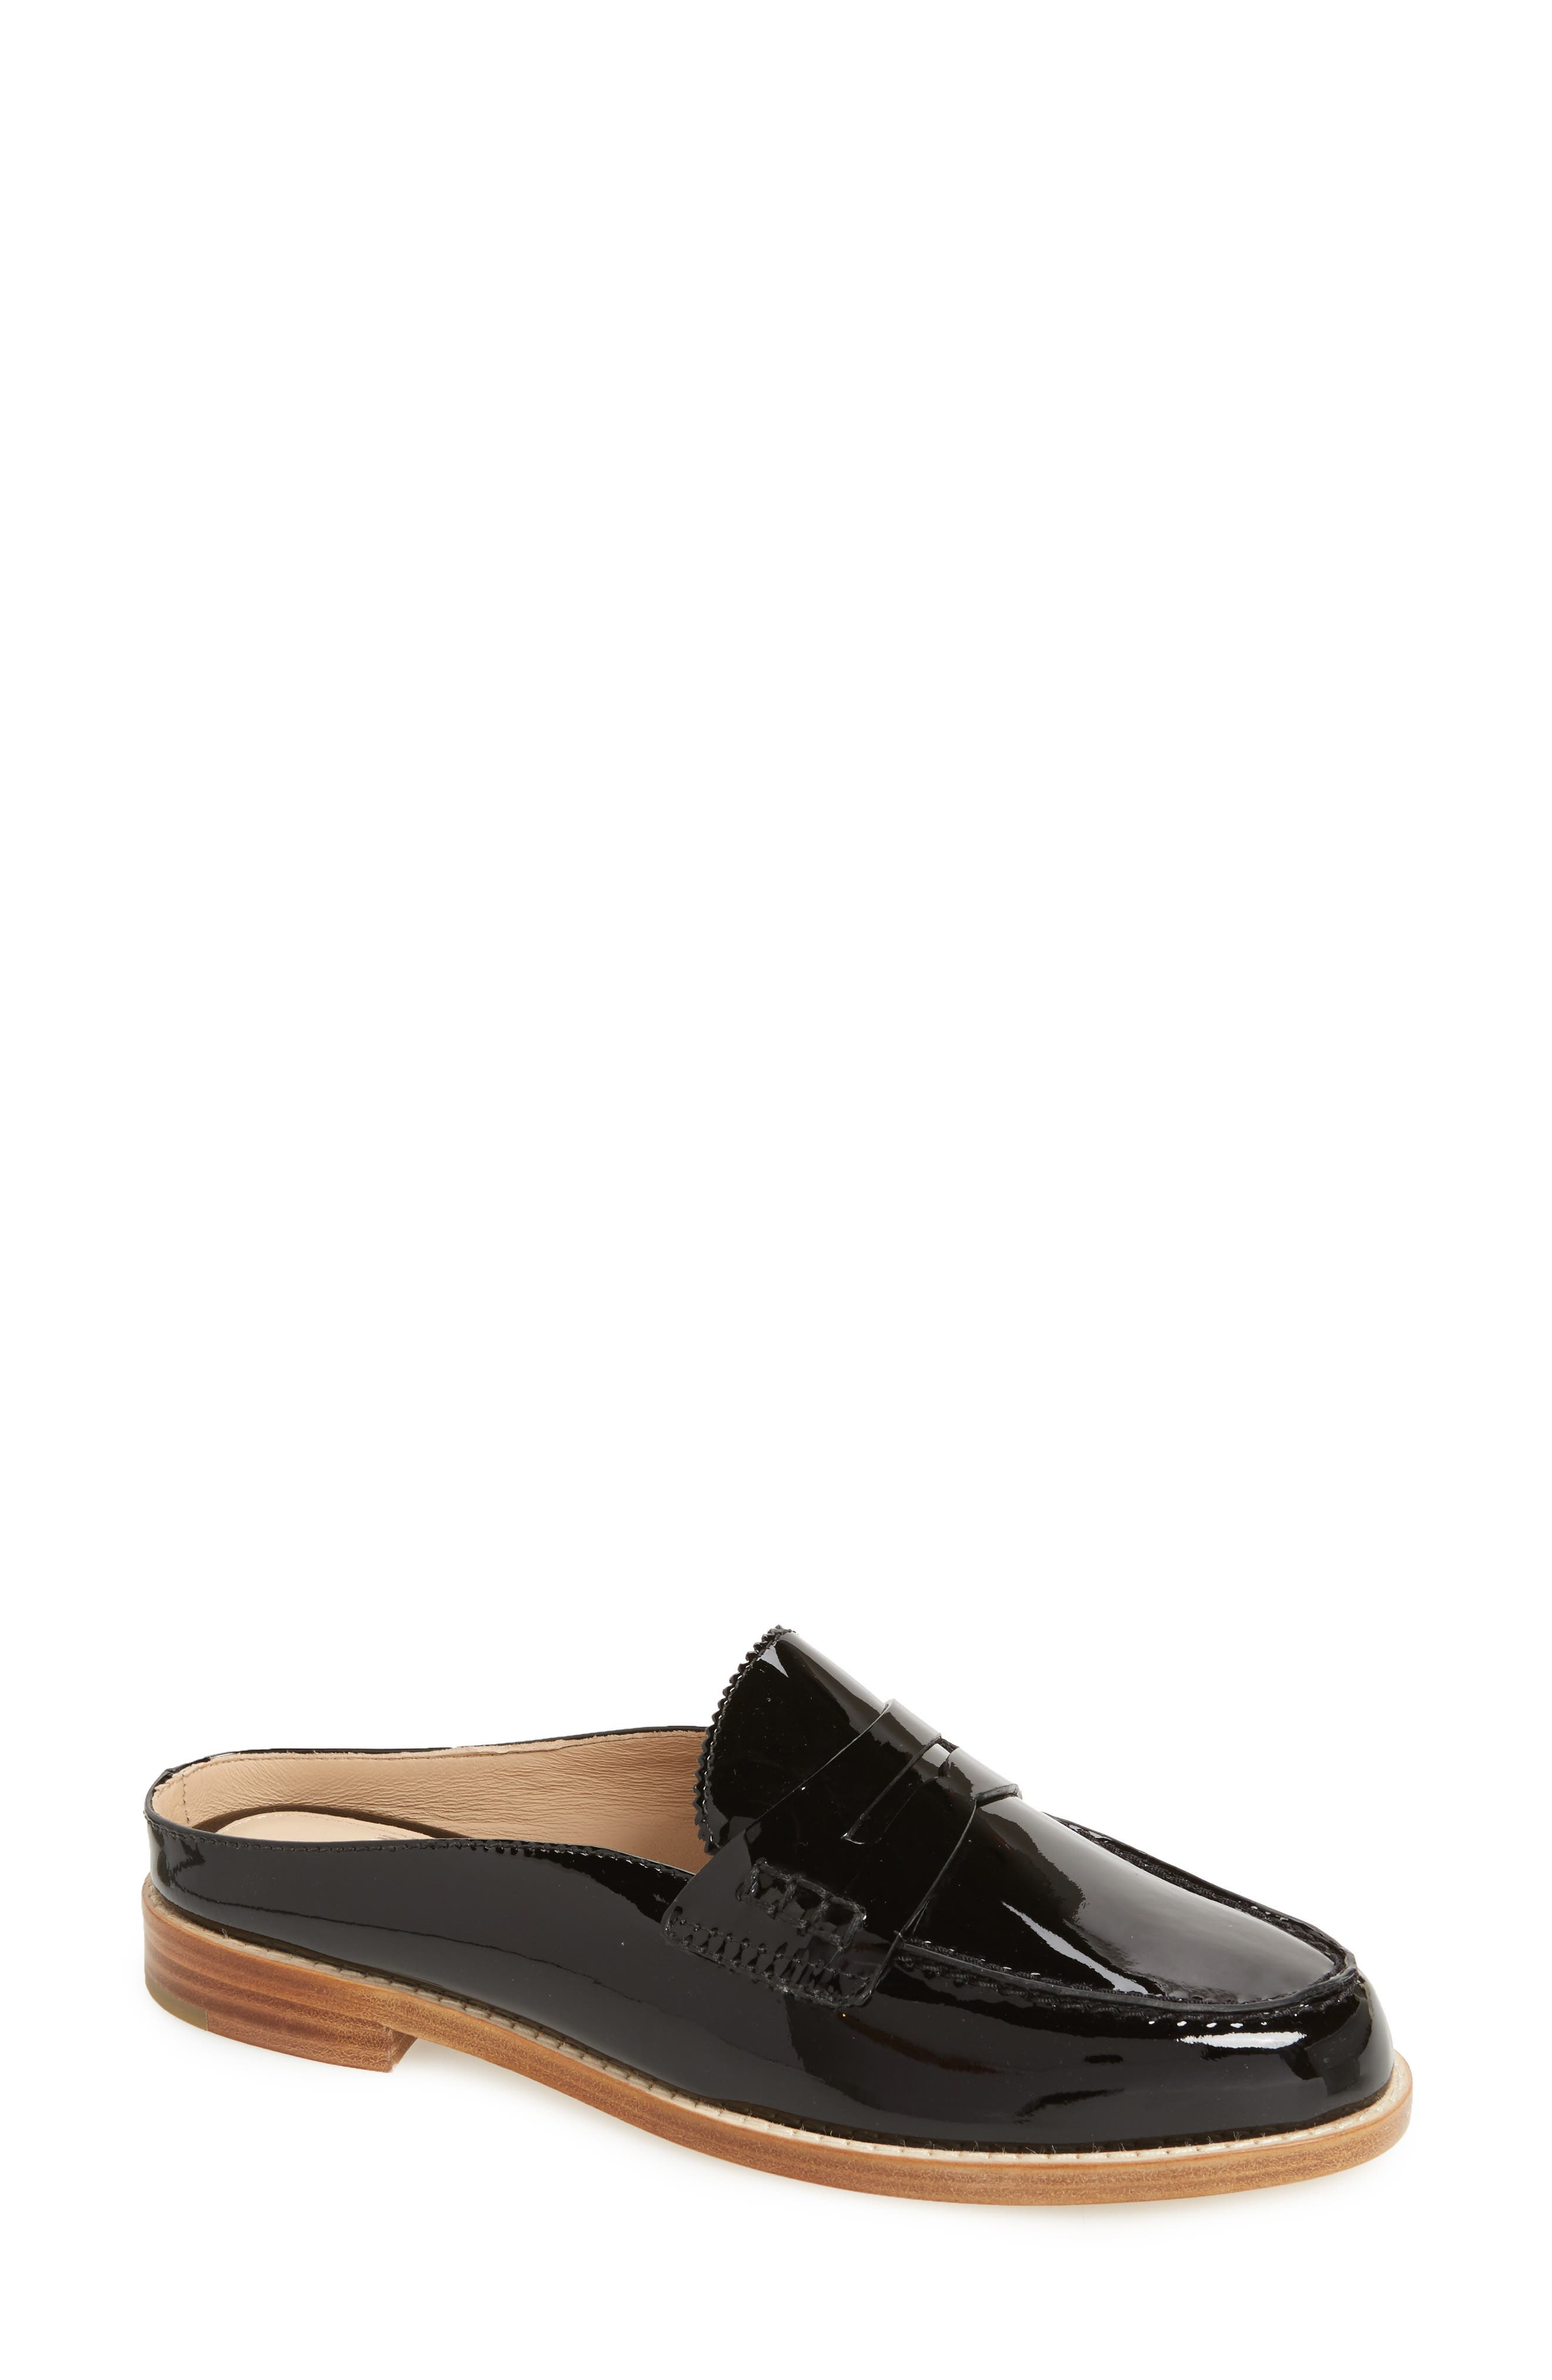 Giada Loafer Mule,                         Main,                         color, BLACK PATENT